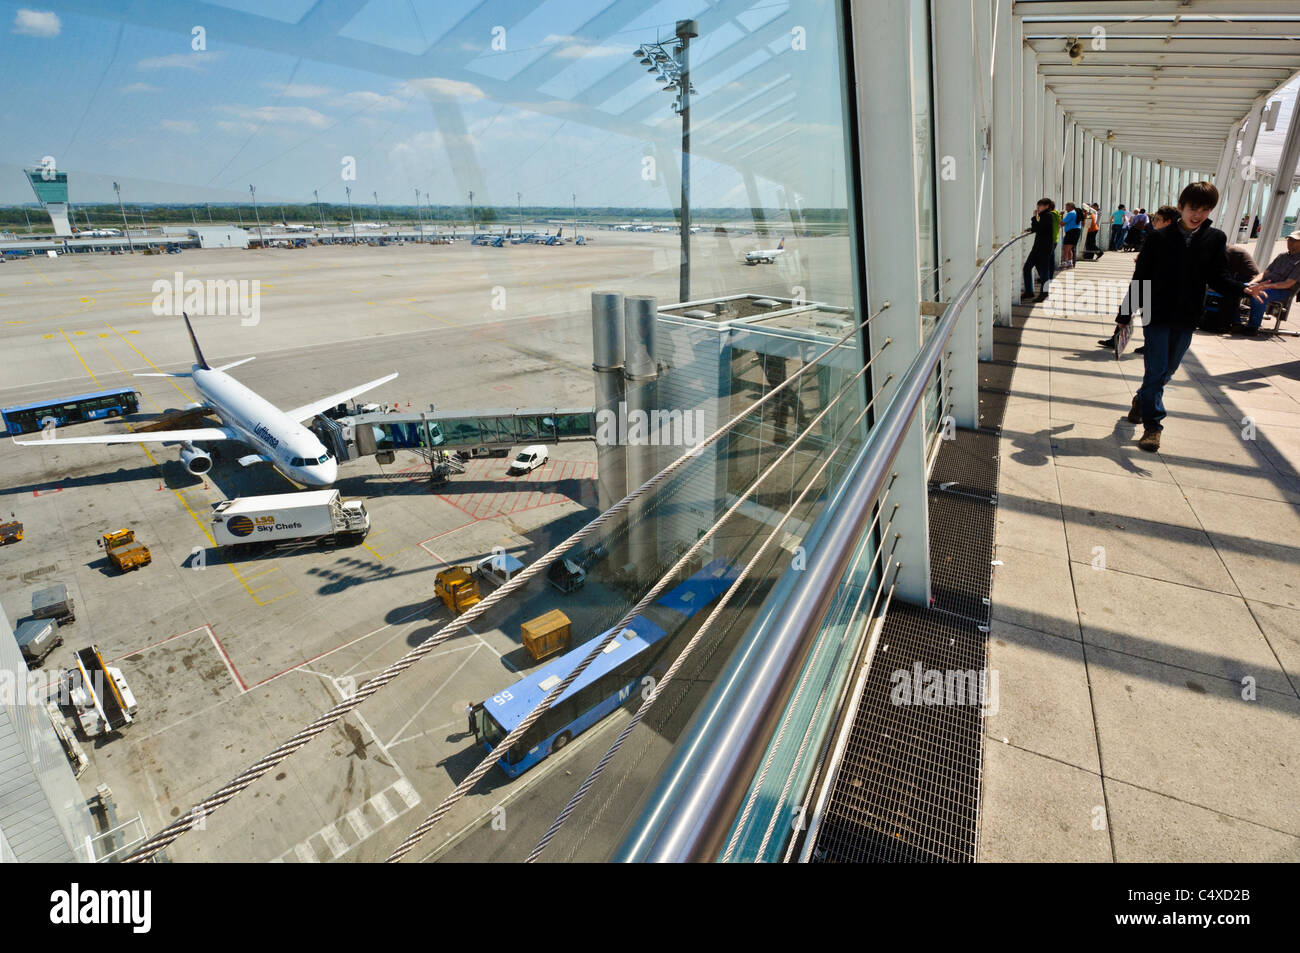 viewing terrace at munich airport munich germany stock photo royalty free image 37460371. Black Bedroom Furniture Sets. Home Design Ideas